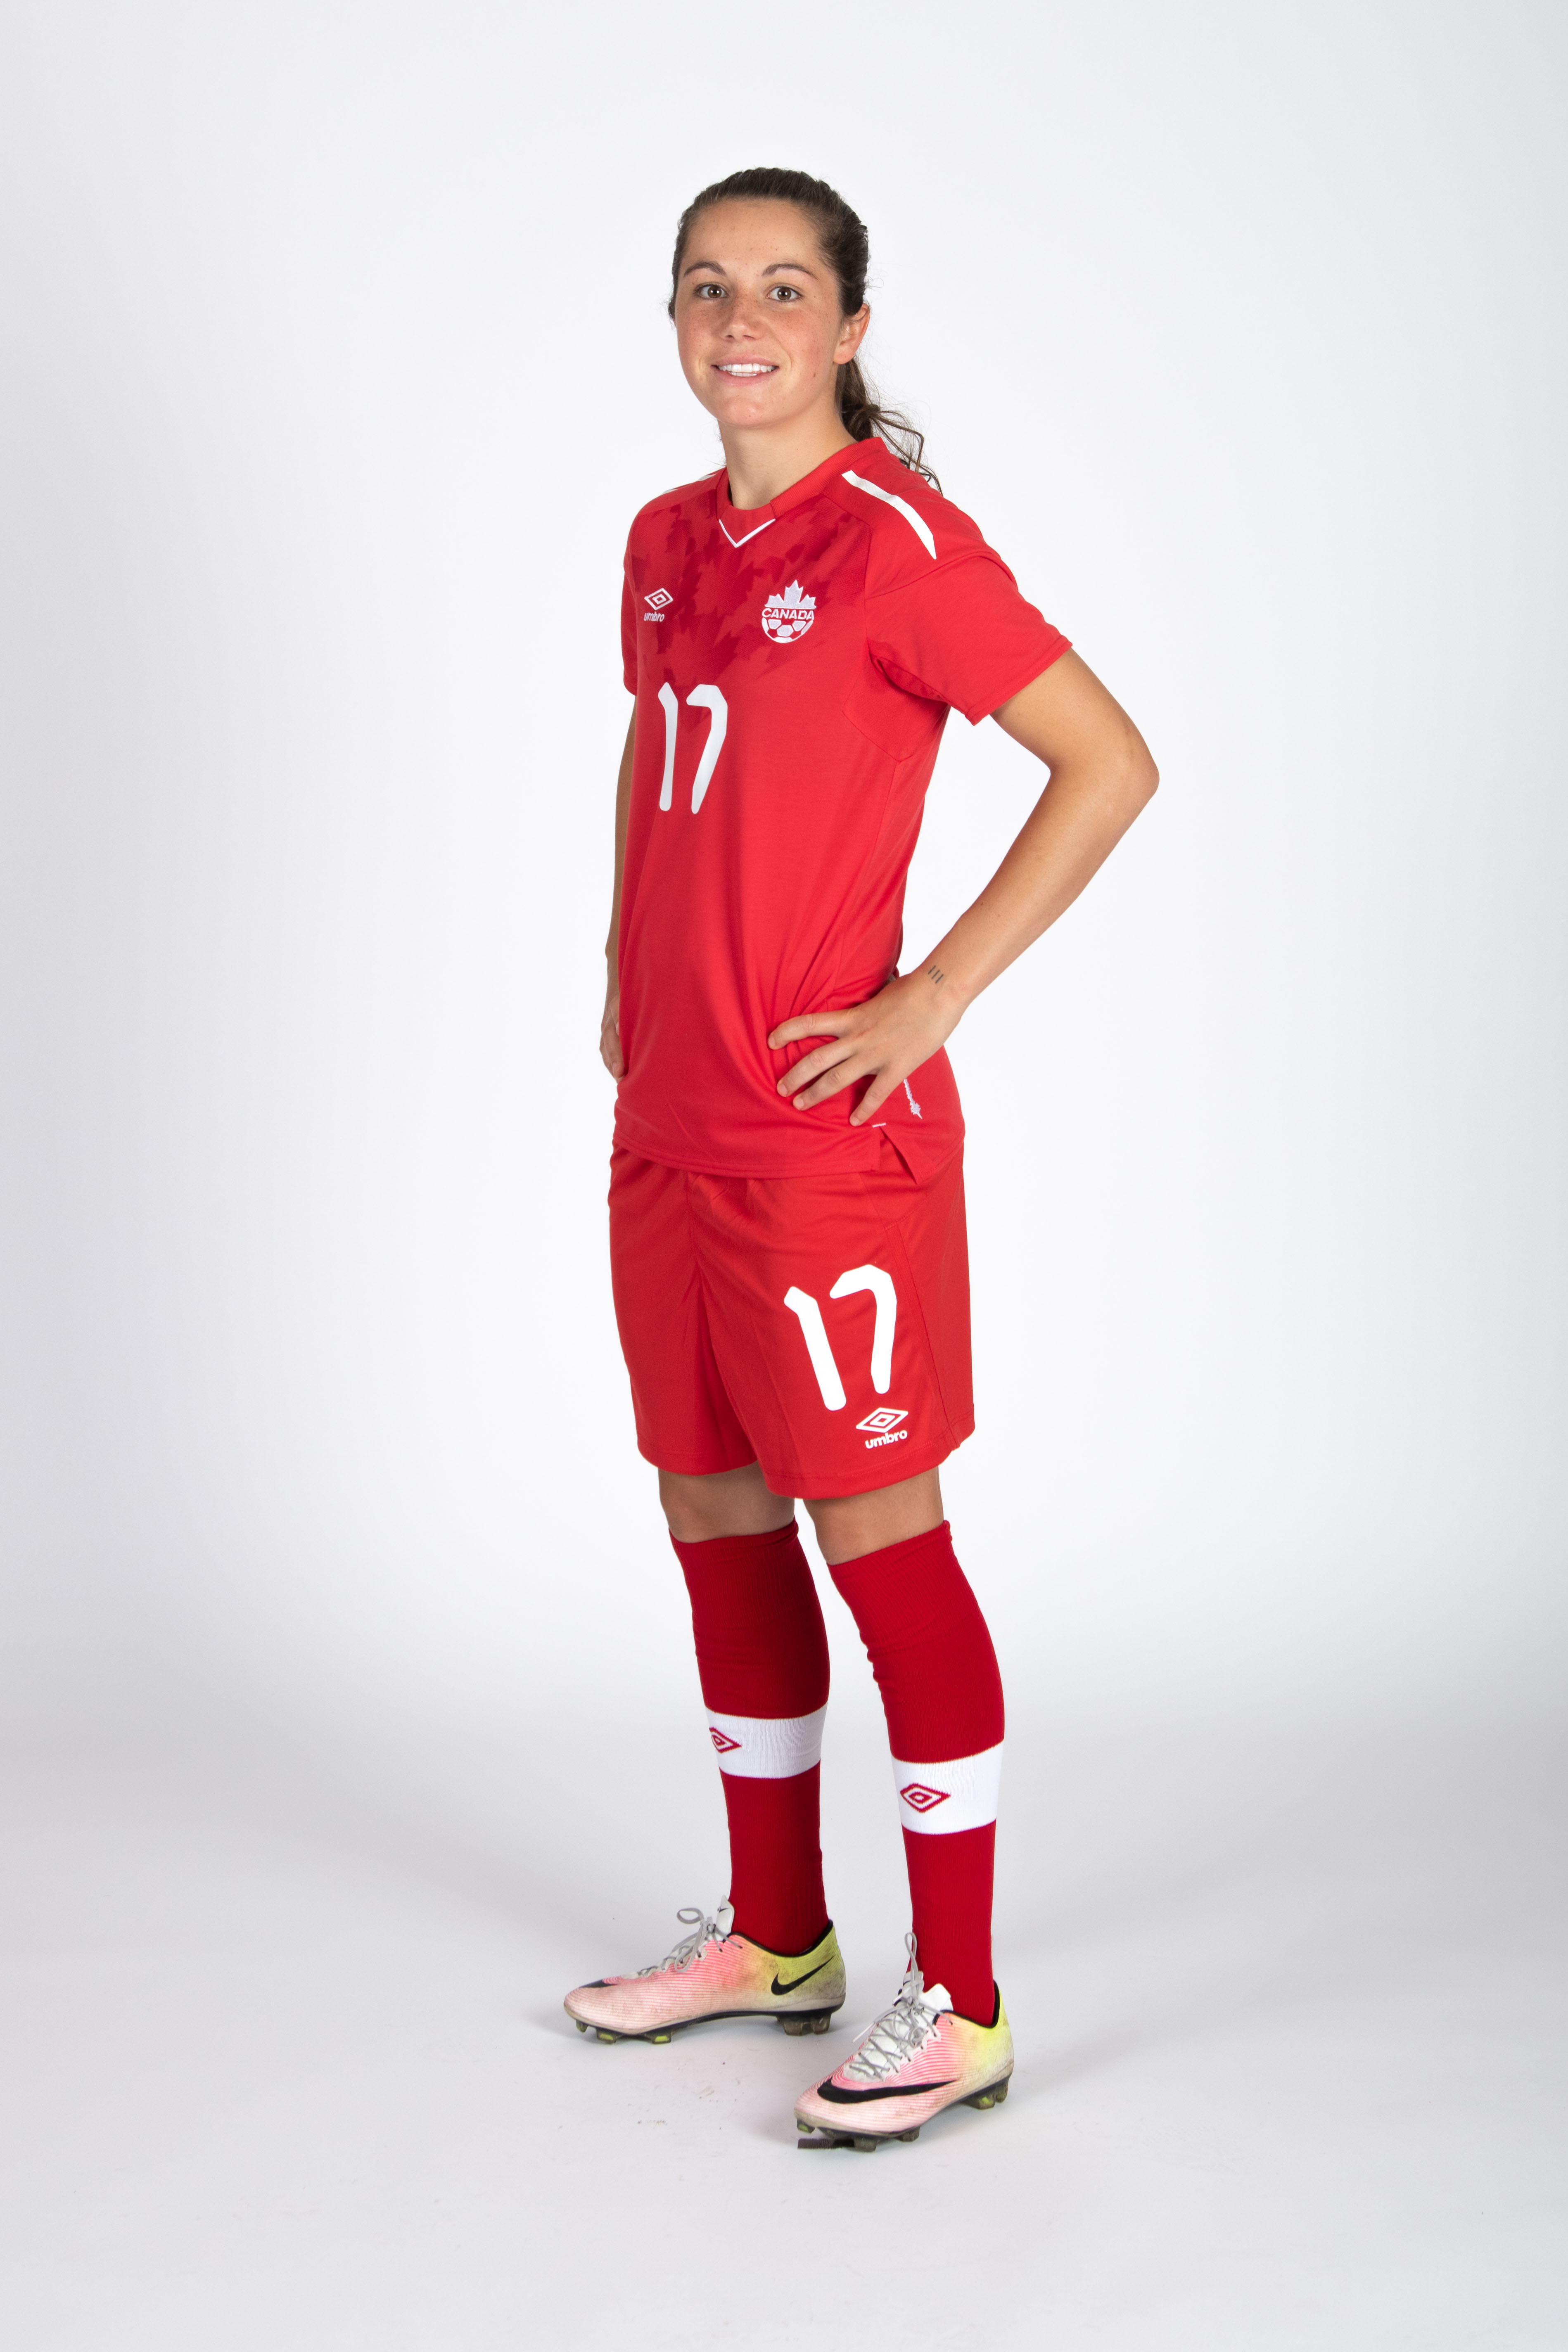 20180604_CANWNT_Fleming_byBazyl25